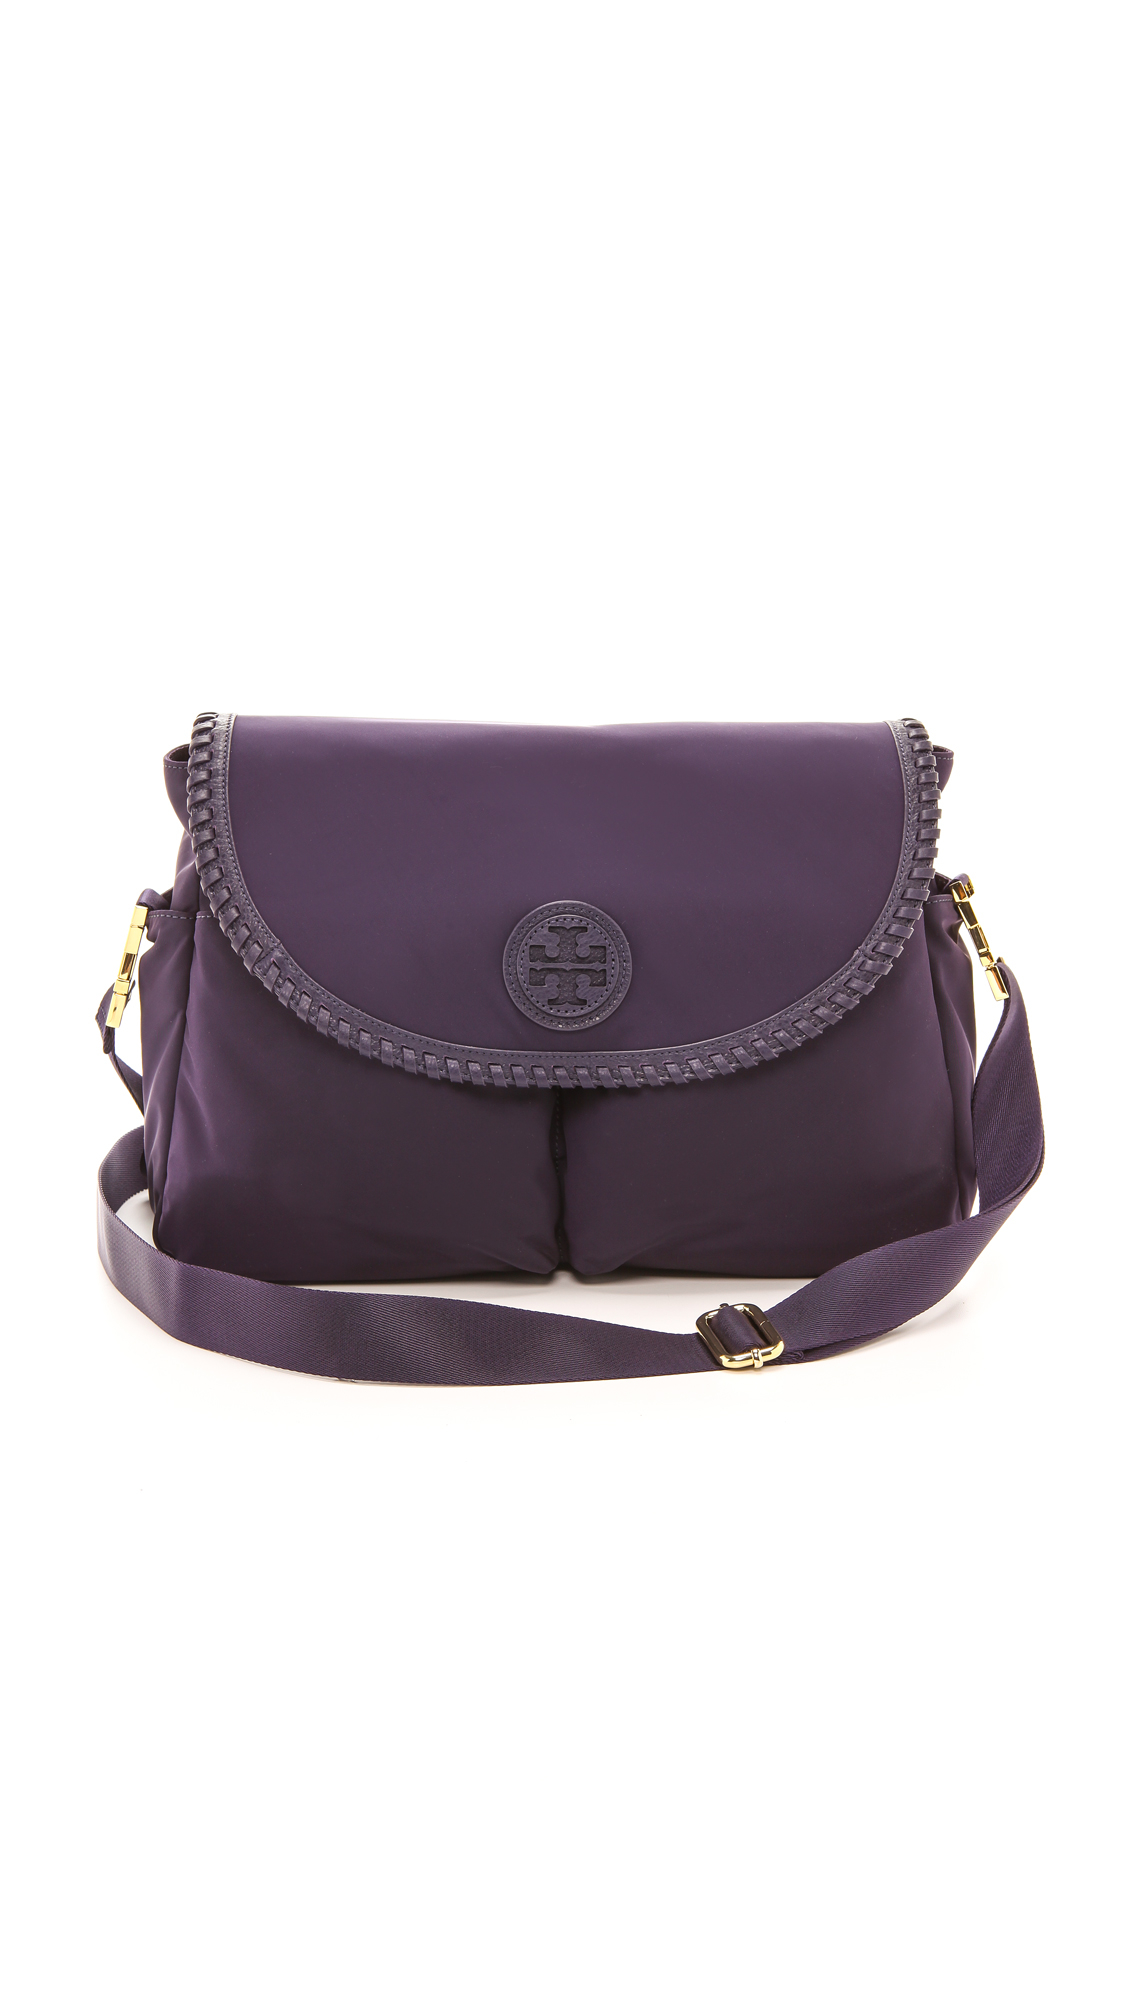 Tory Burch Marion Nylon Baby Bag Blue Ink In Purple Blue